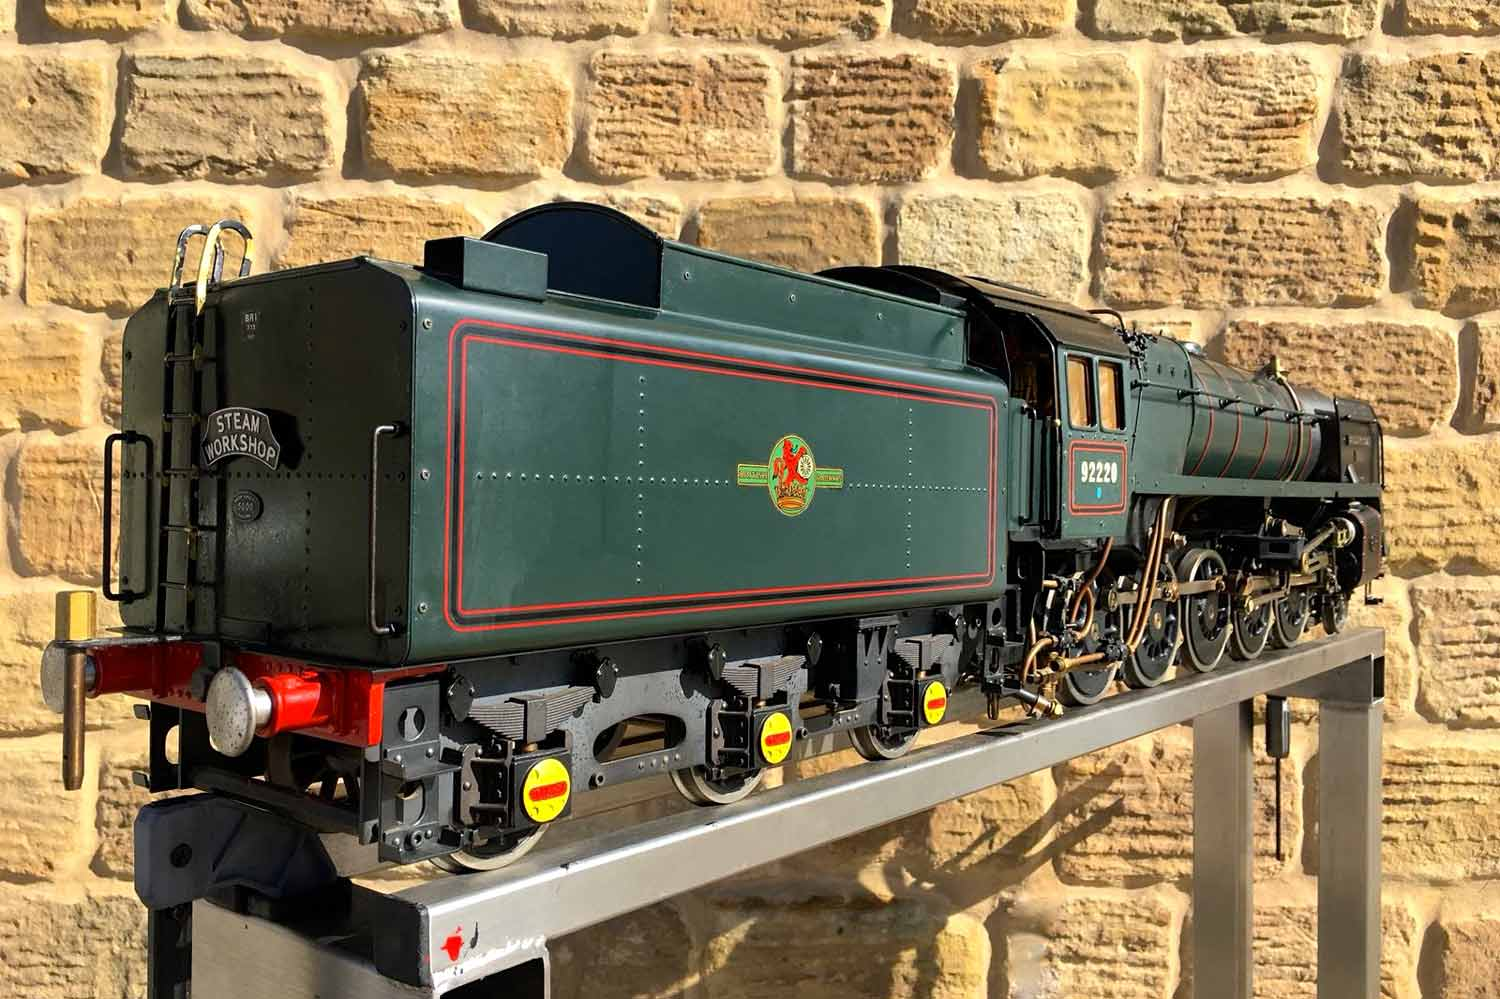 test 3-and-a-half-inch-BR-9F-OS-live-steam-locomotive-for-sale-02